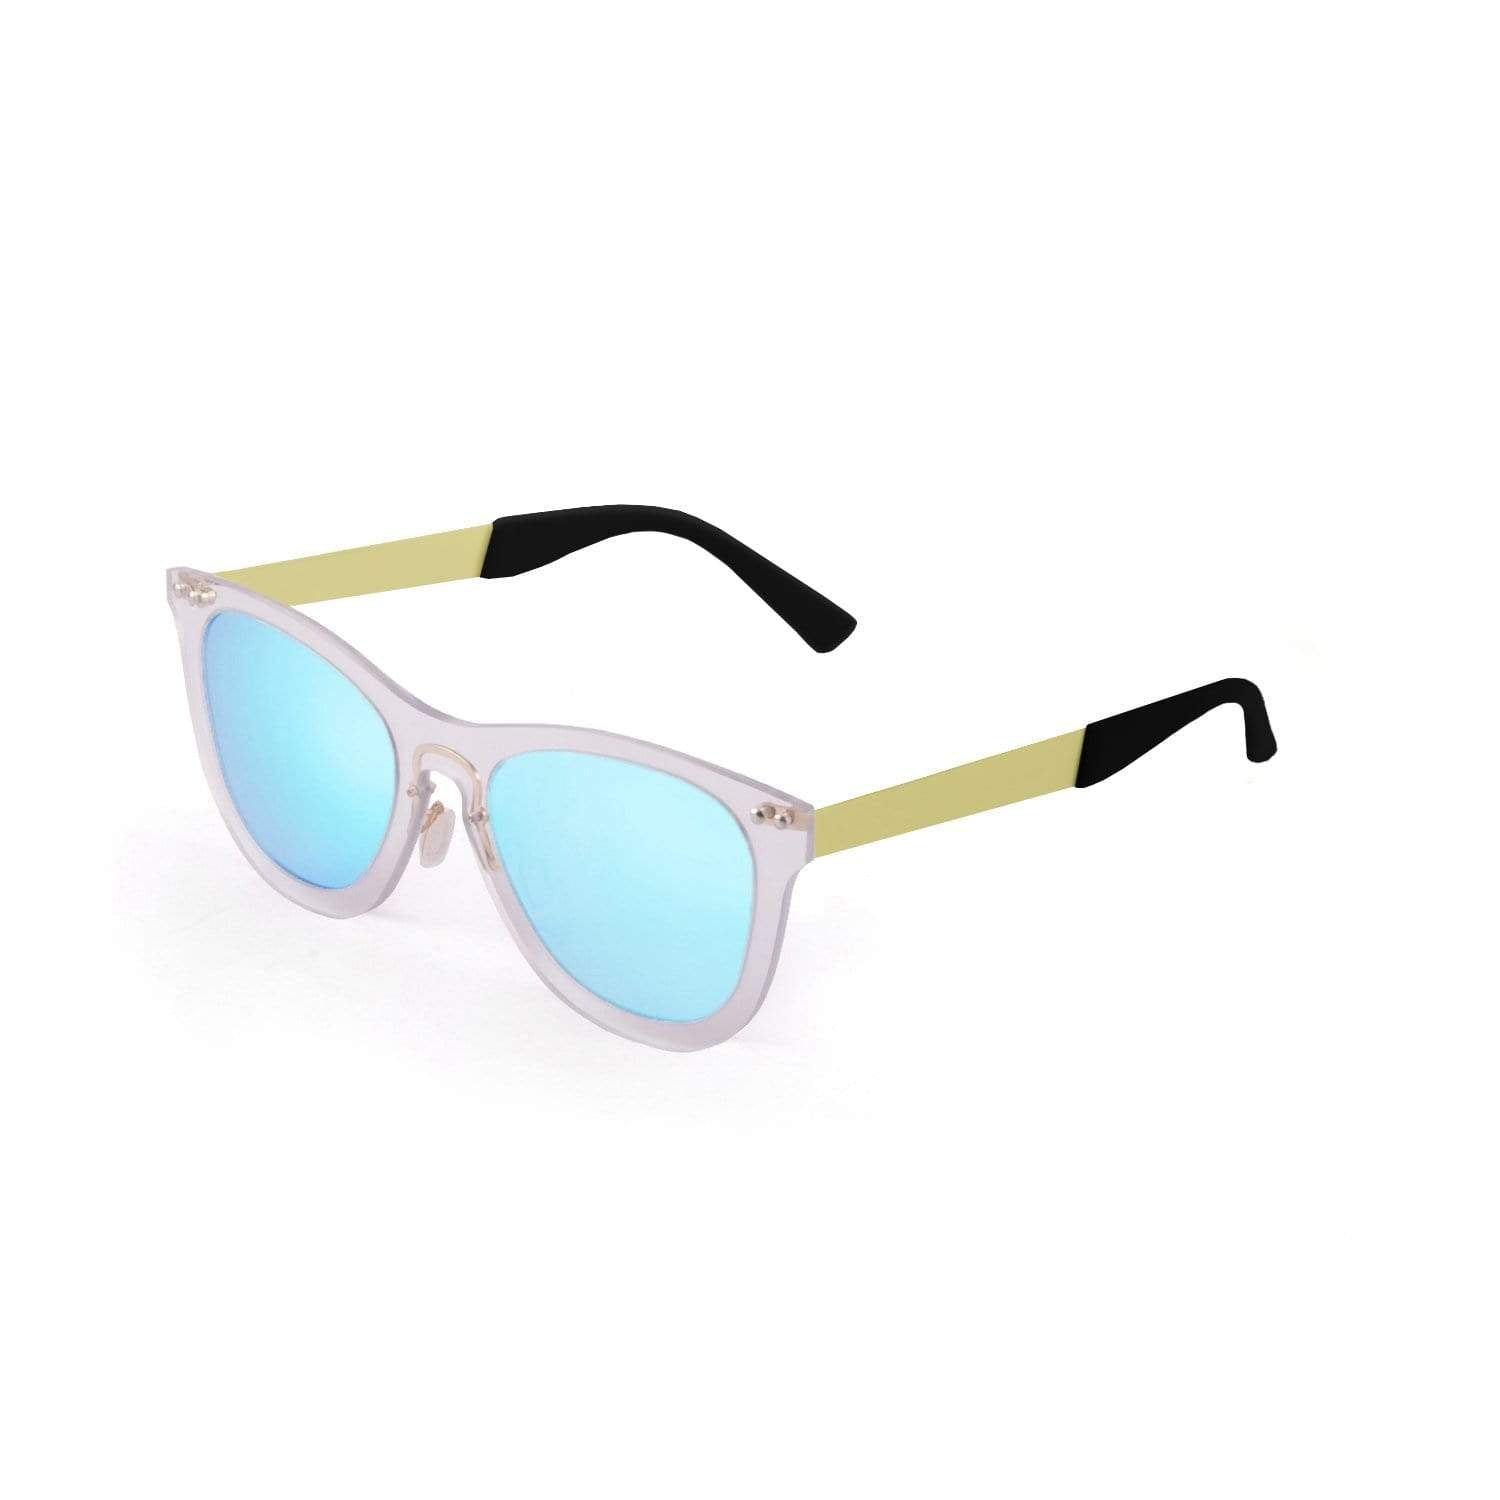 Ocean Sunglasses Accessories Sunglasses blue-3 / NOSIZE Ocean Sunglasses - FLORENCIA